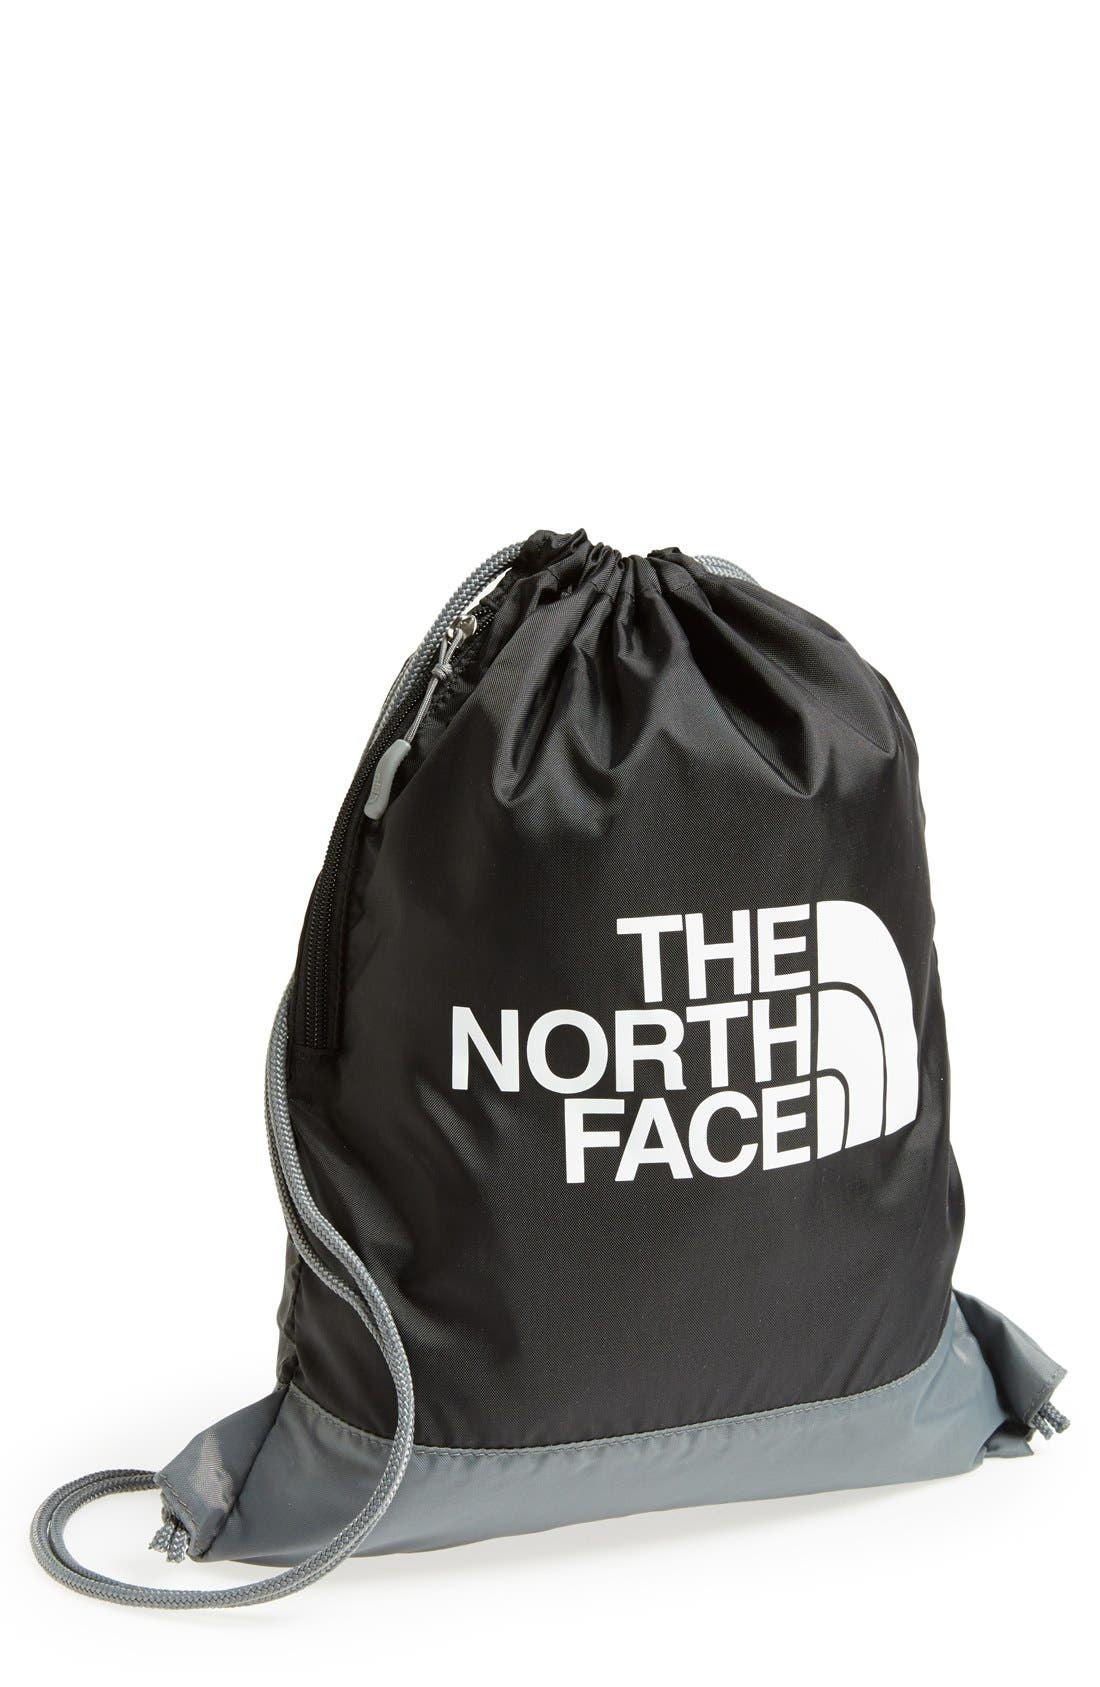 Alternate Image 1 Selected - The North Face 'Sack Pack' Drawstring Bag